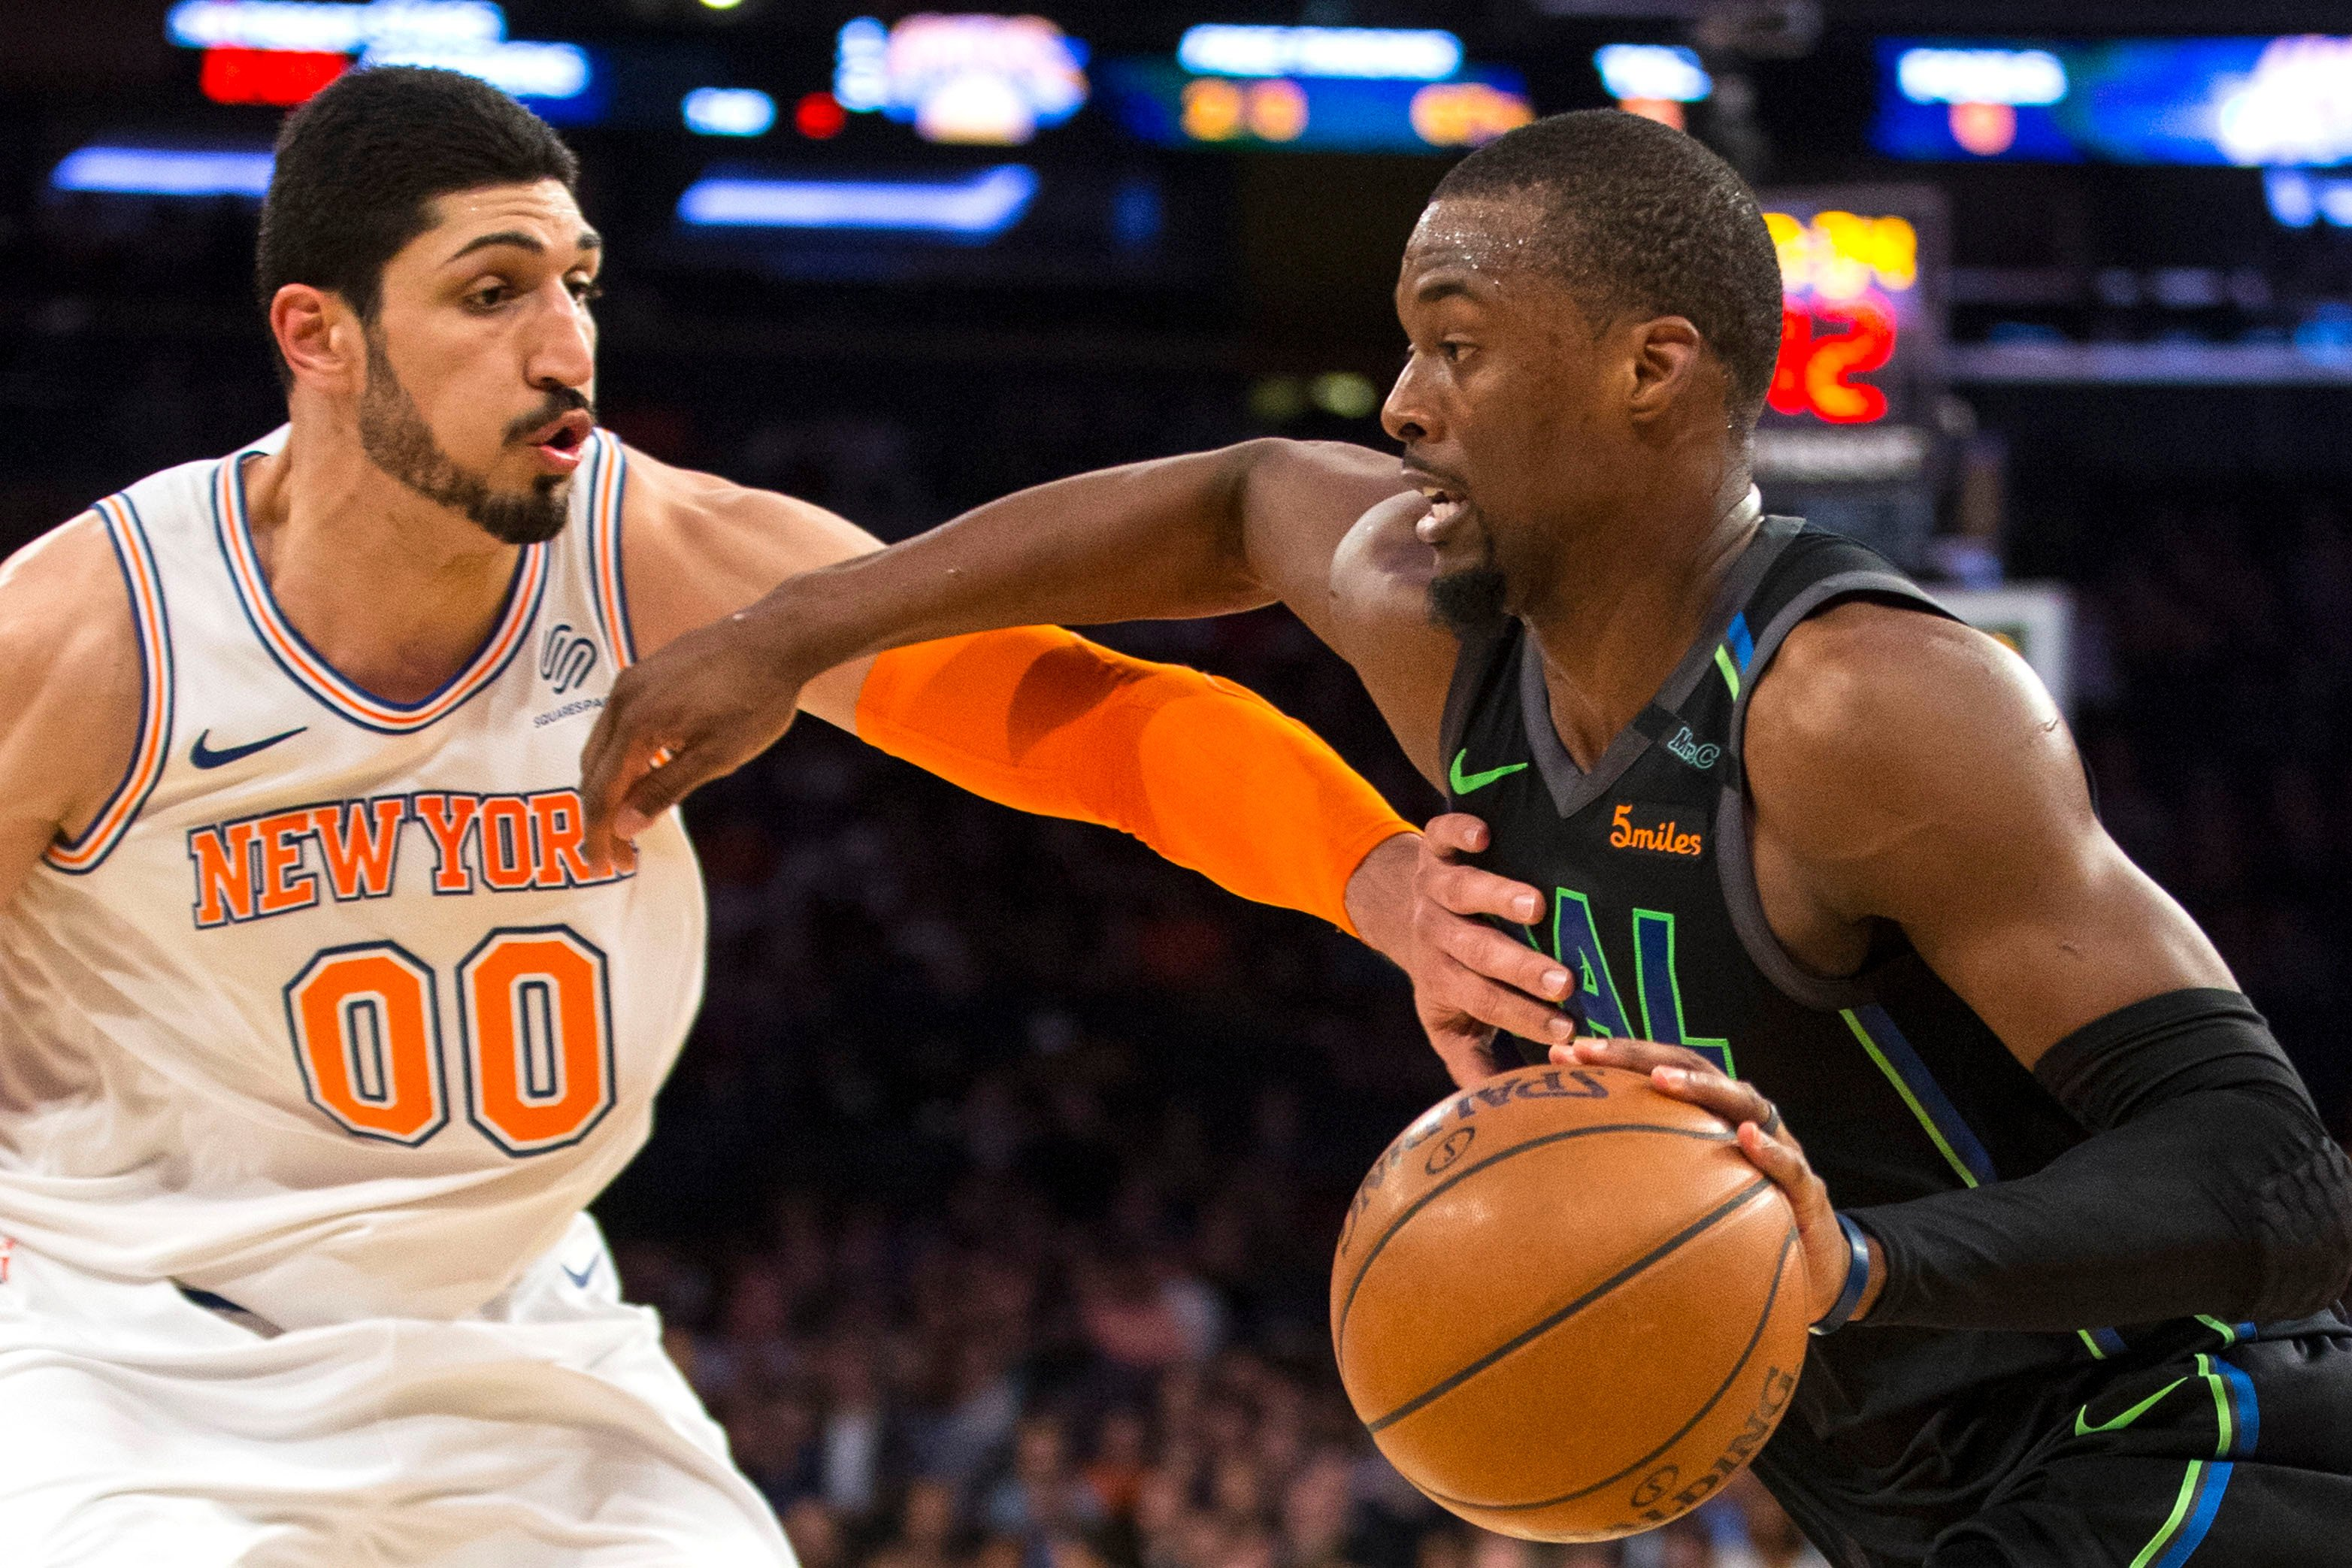 Knicks make more progress on tanking front